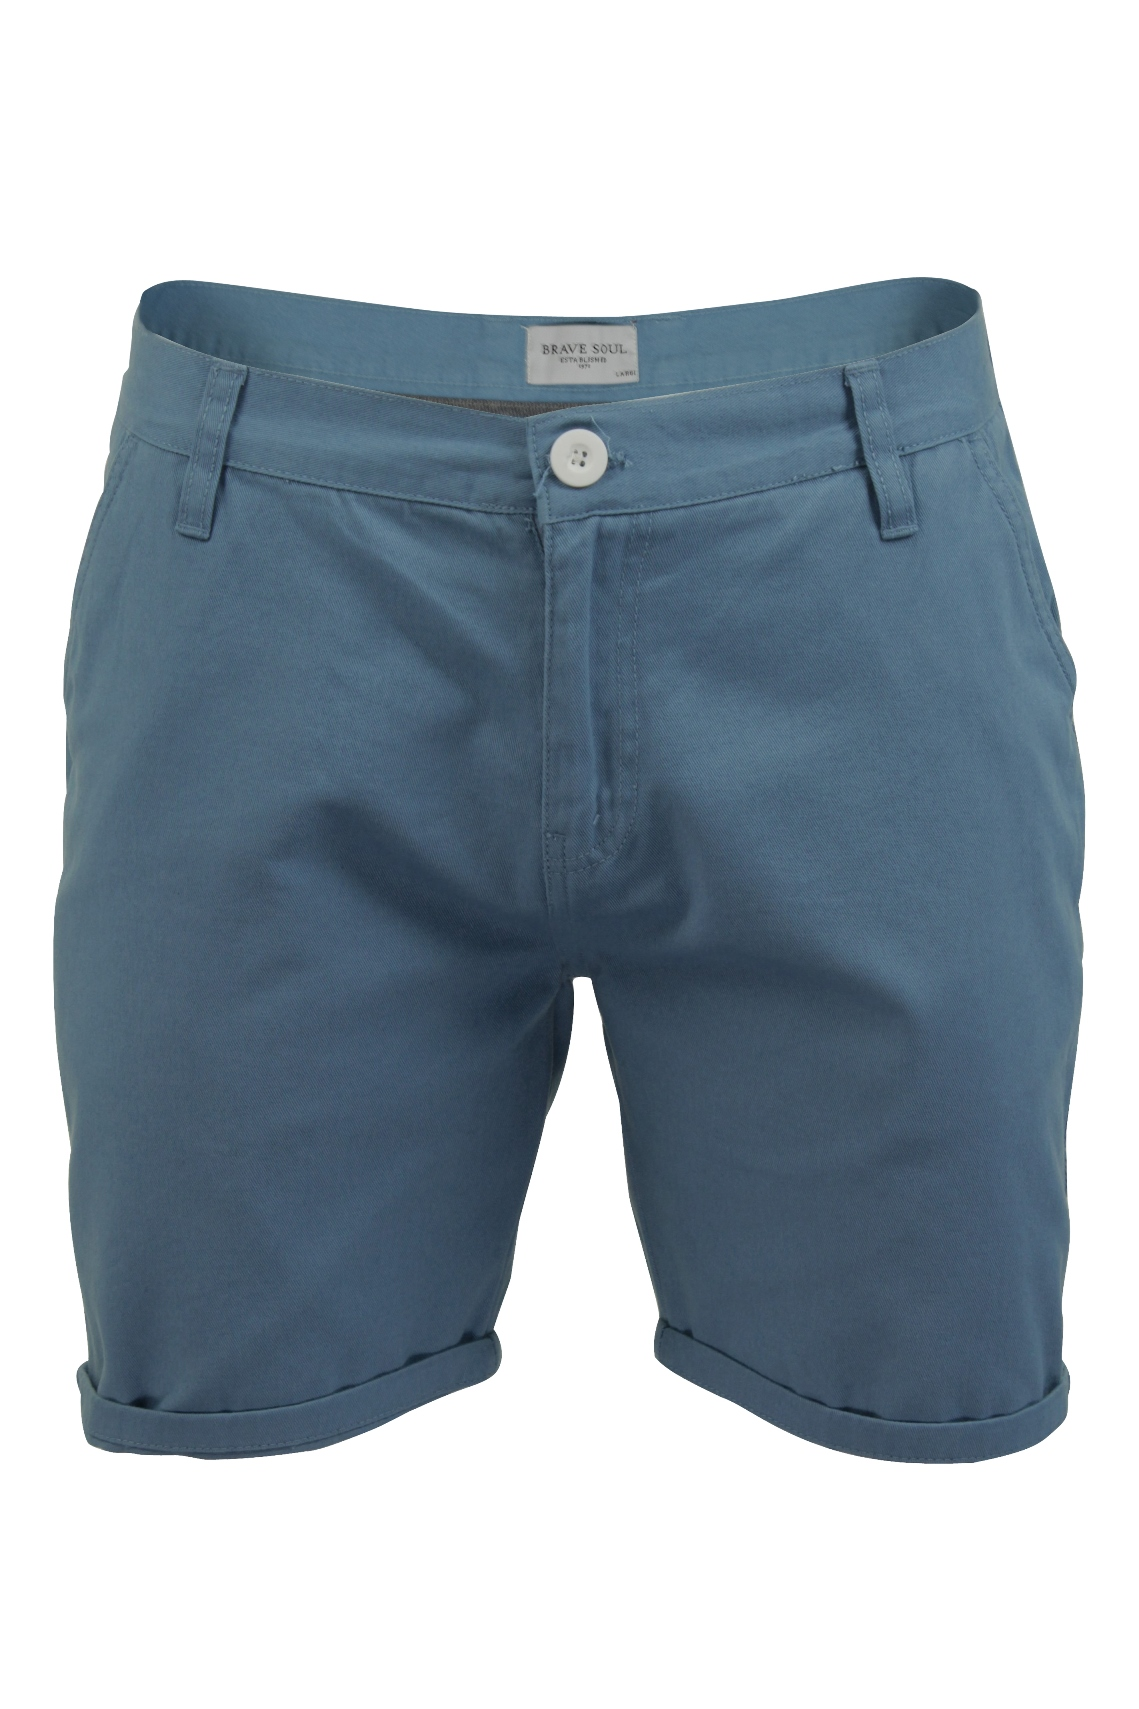 mens chino shorts mens-chino-shorts-by-brave-soul-039-fern- UBXNNTL